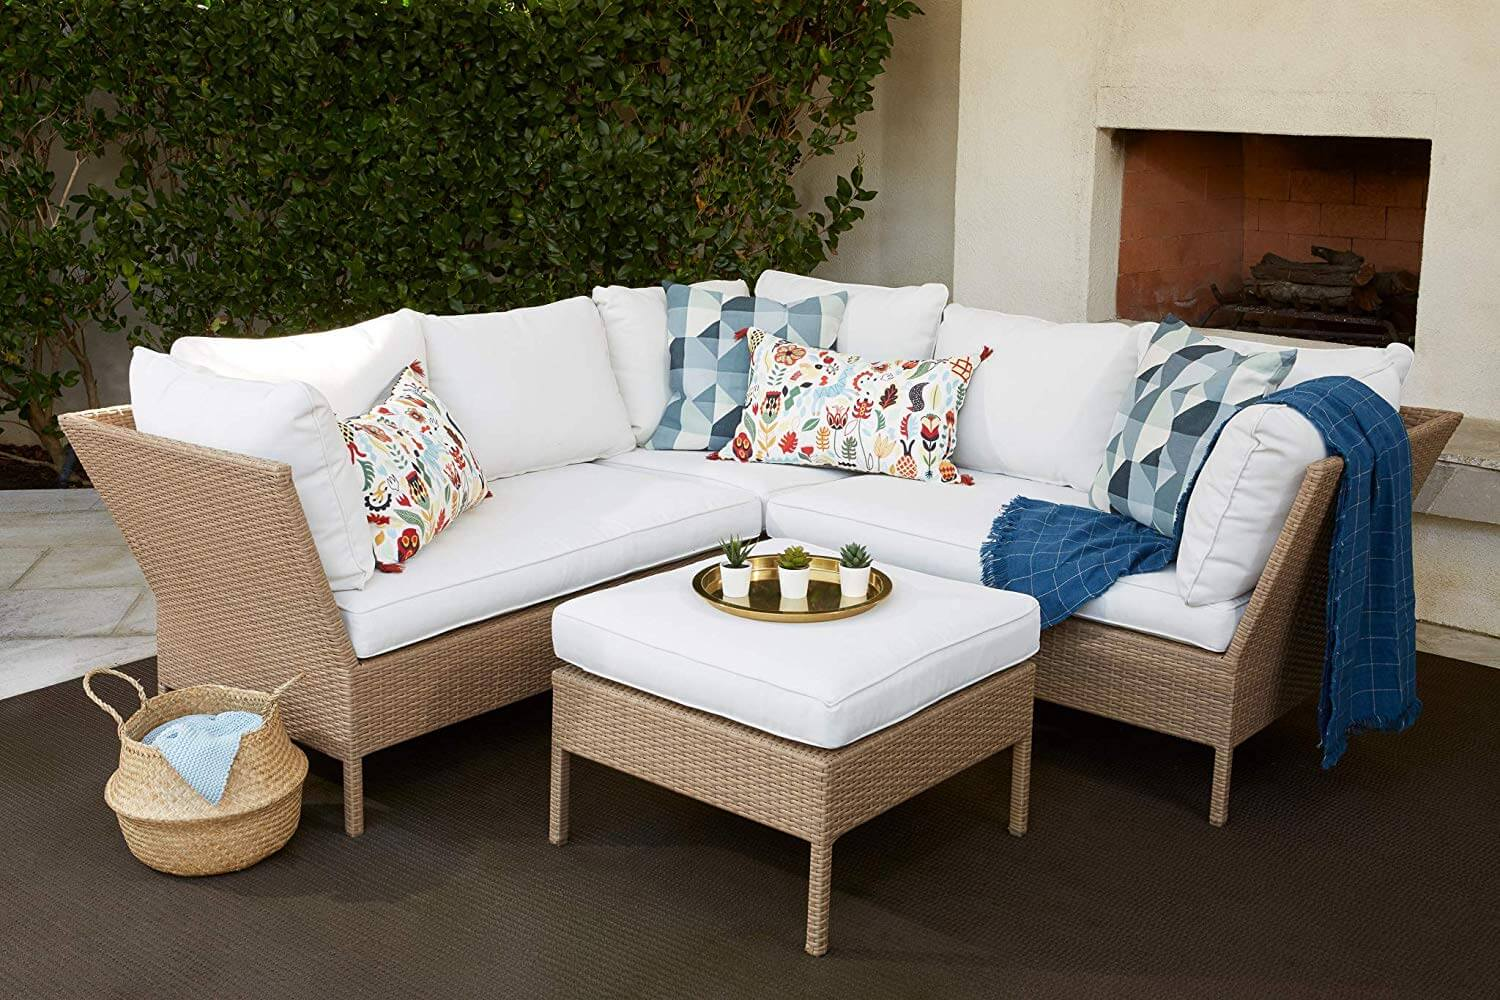 White outdoor living set up